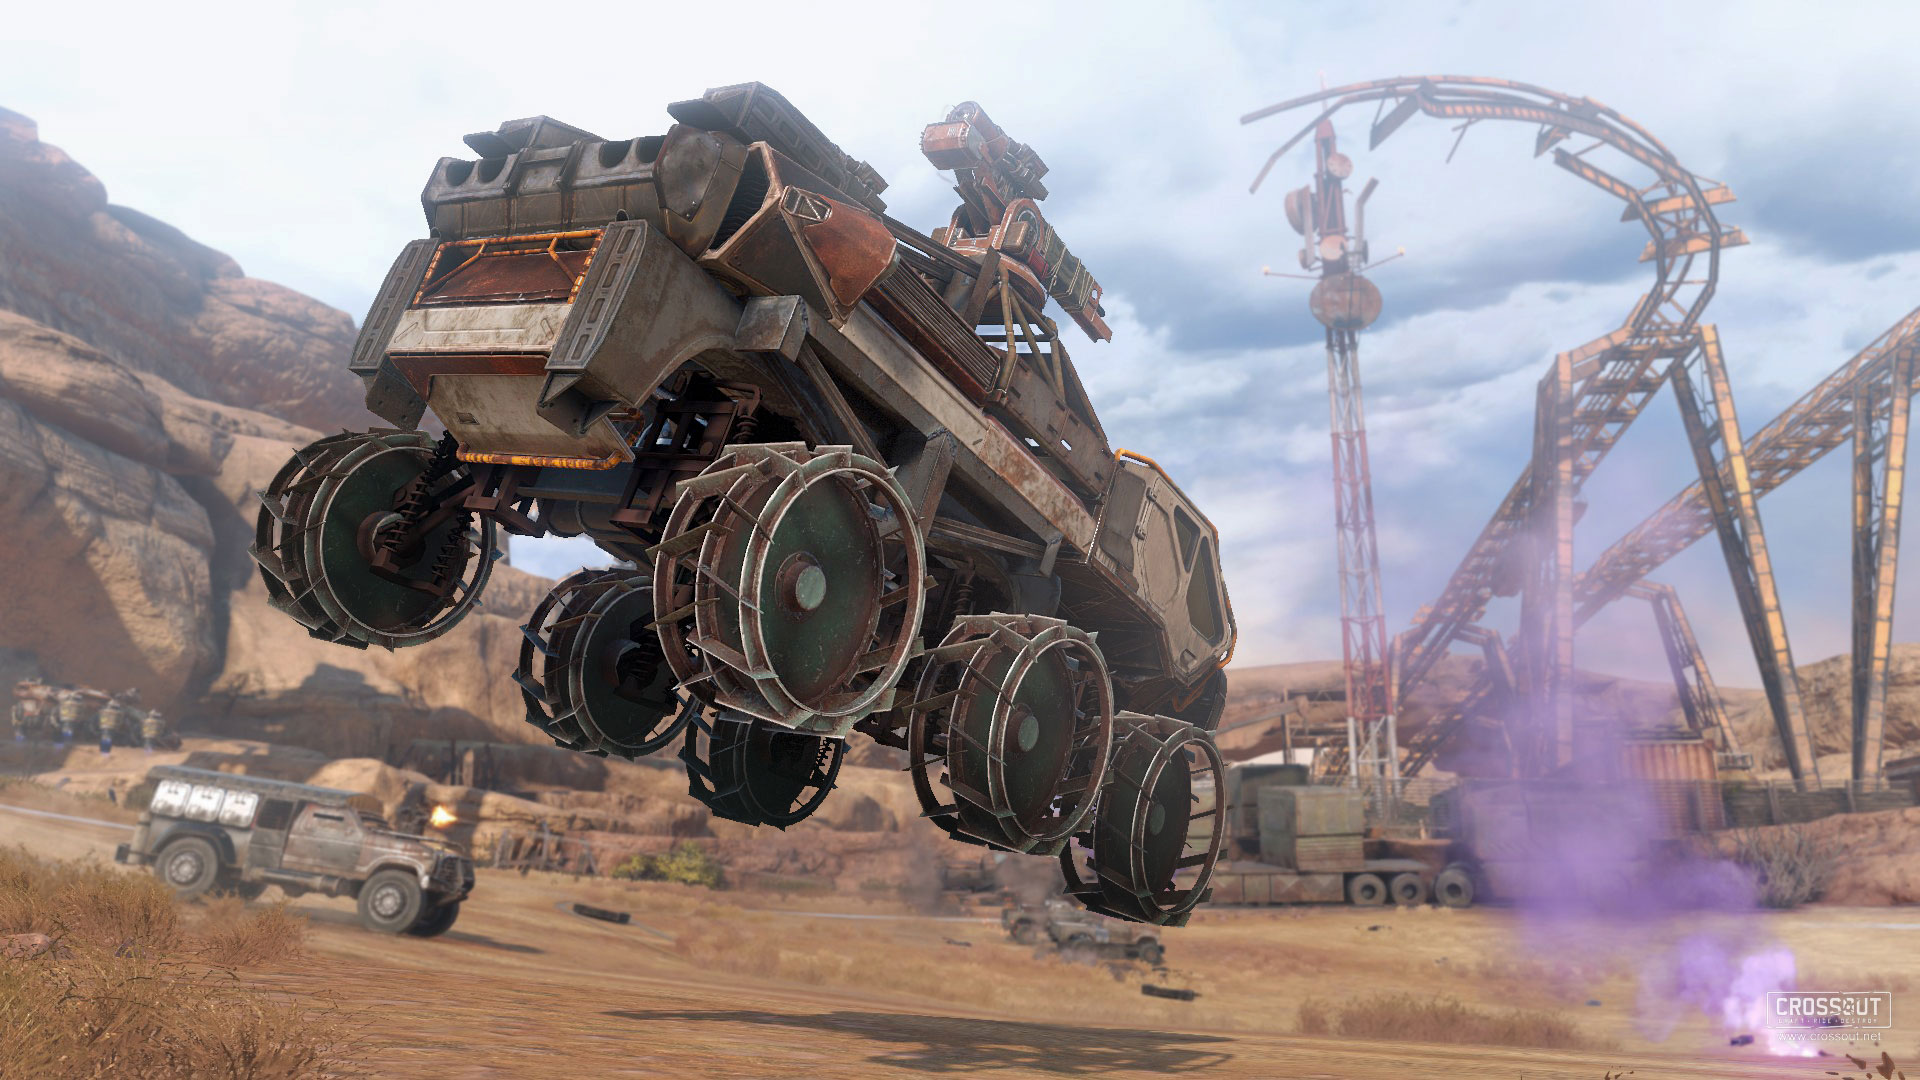 Crossout on Steam